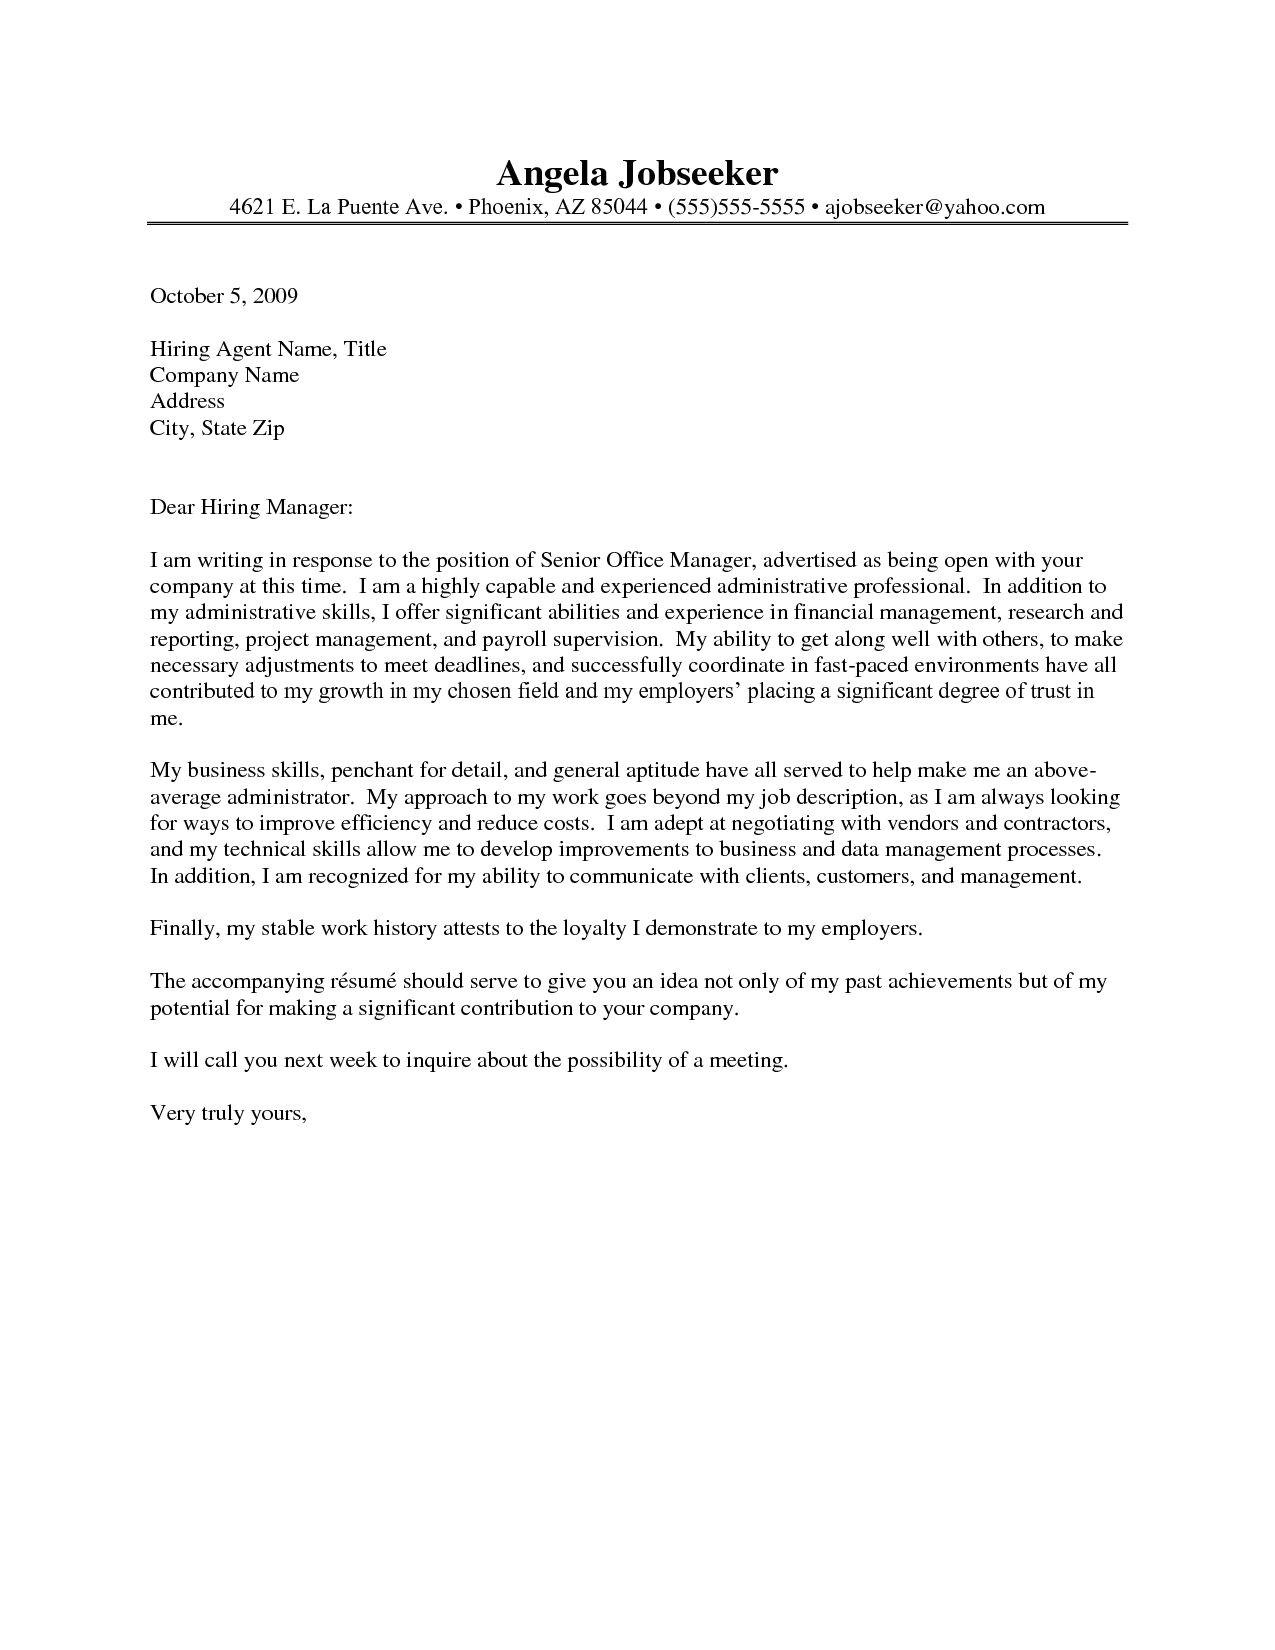 How to Write A Cover Letter for Administrative assistant Position Administrative assistant Resume Cover Letter Http